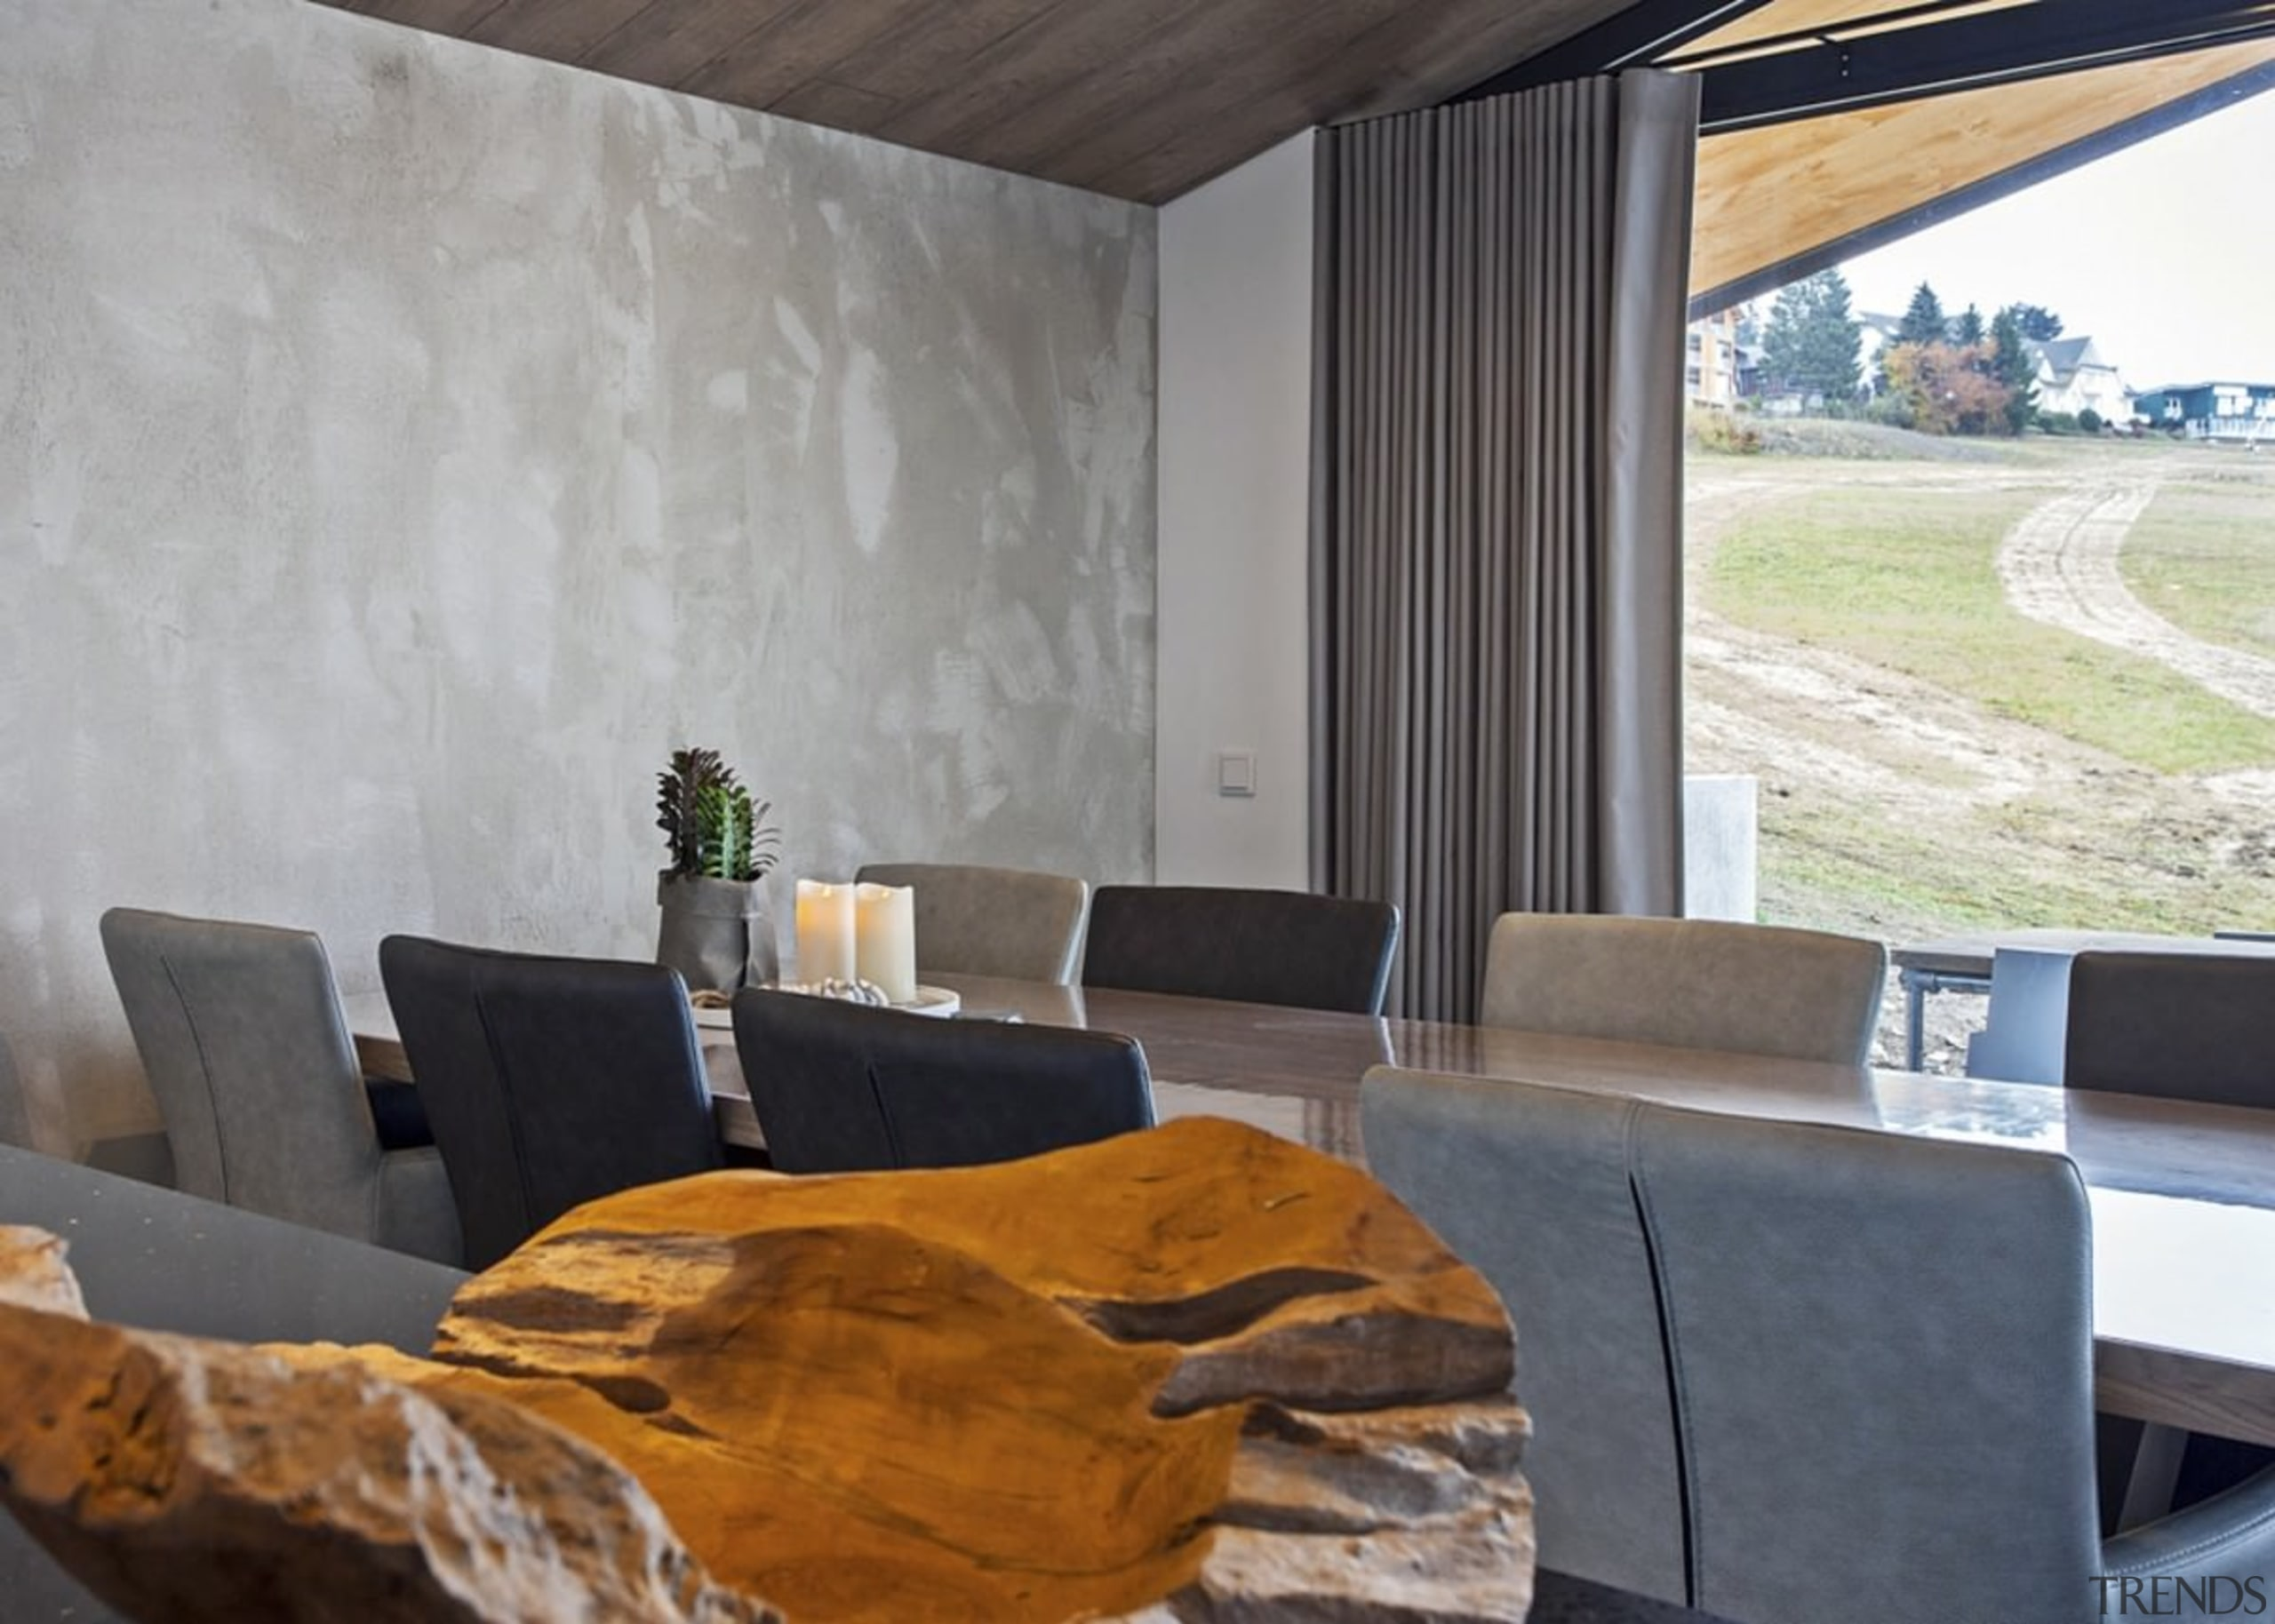 Concrete walls and wood ceilings - Concrete walls architecture, house, interior design, property, real estate, gray